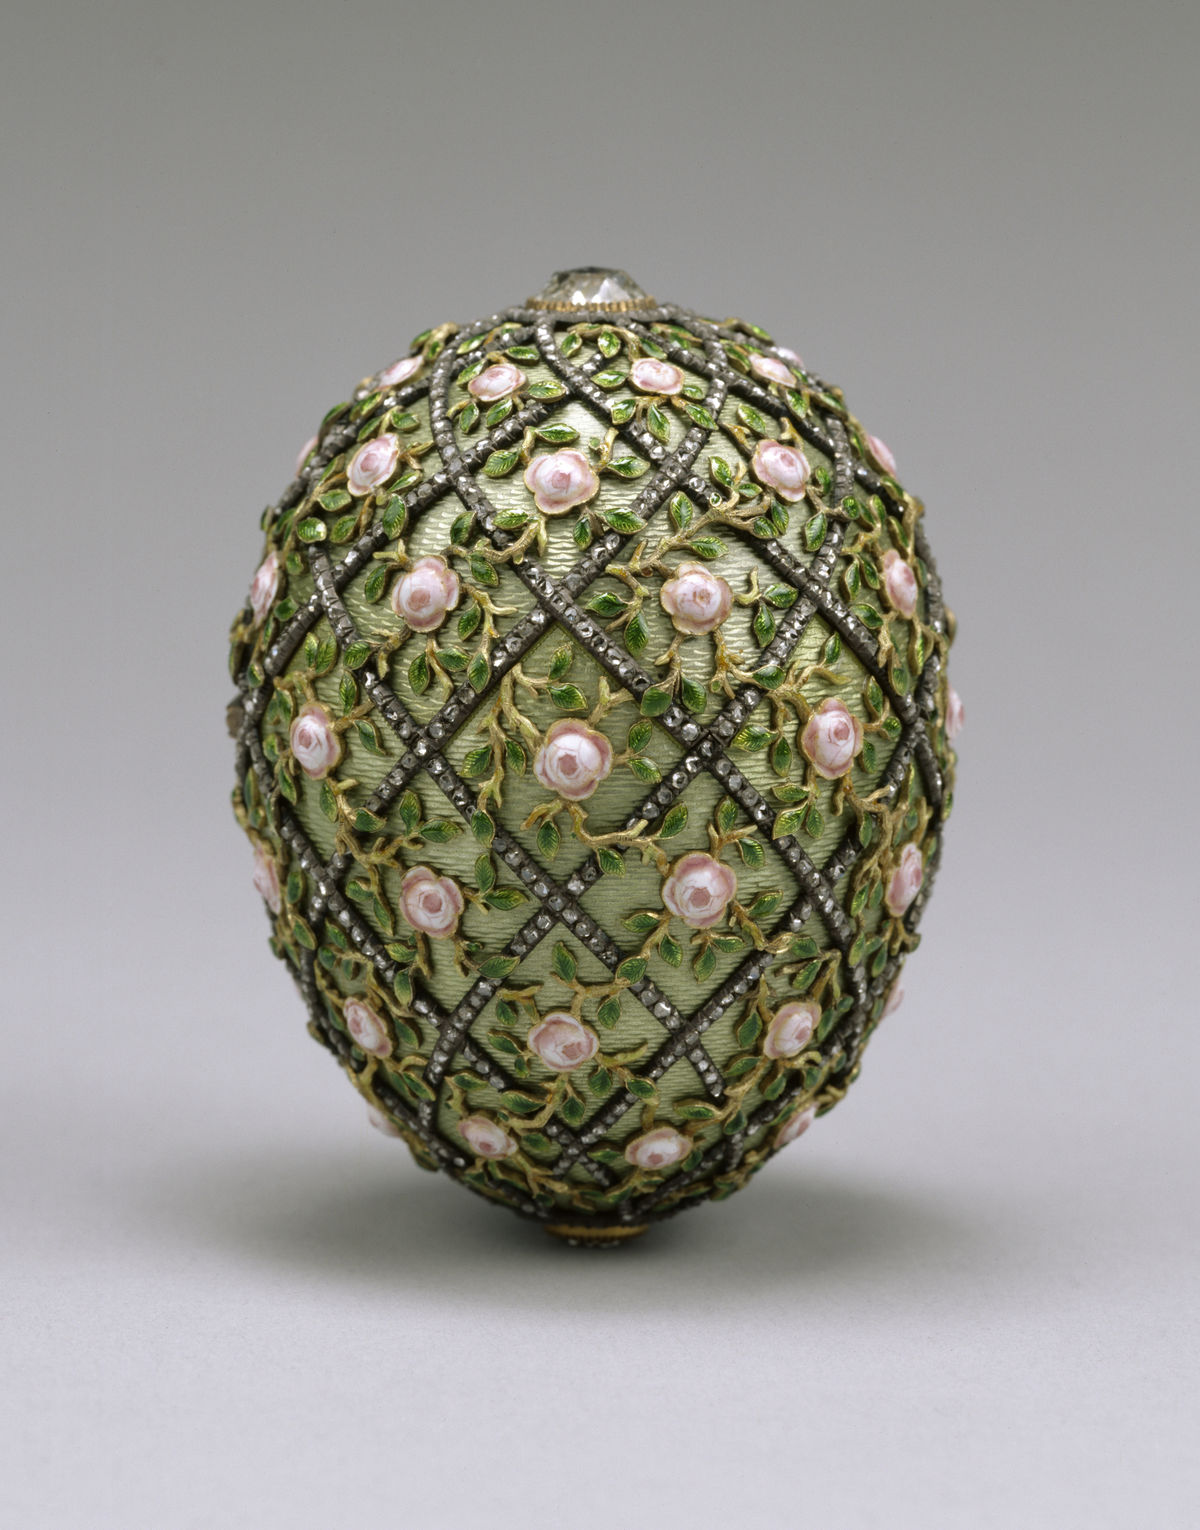 1200px House of Fabergé Rose Trellis Egg Walters 44501